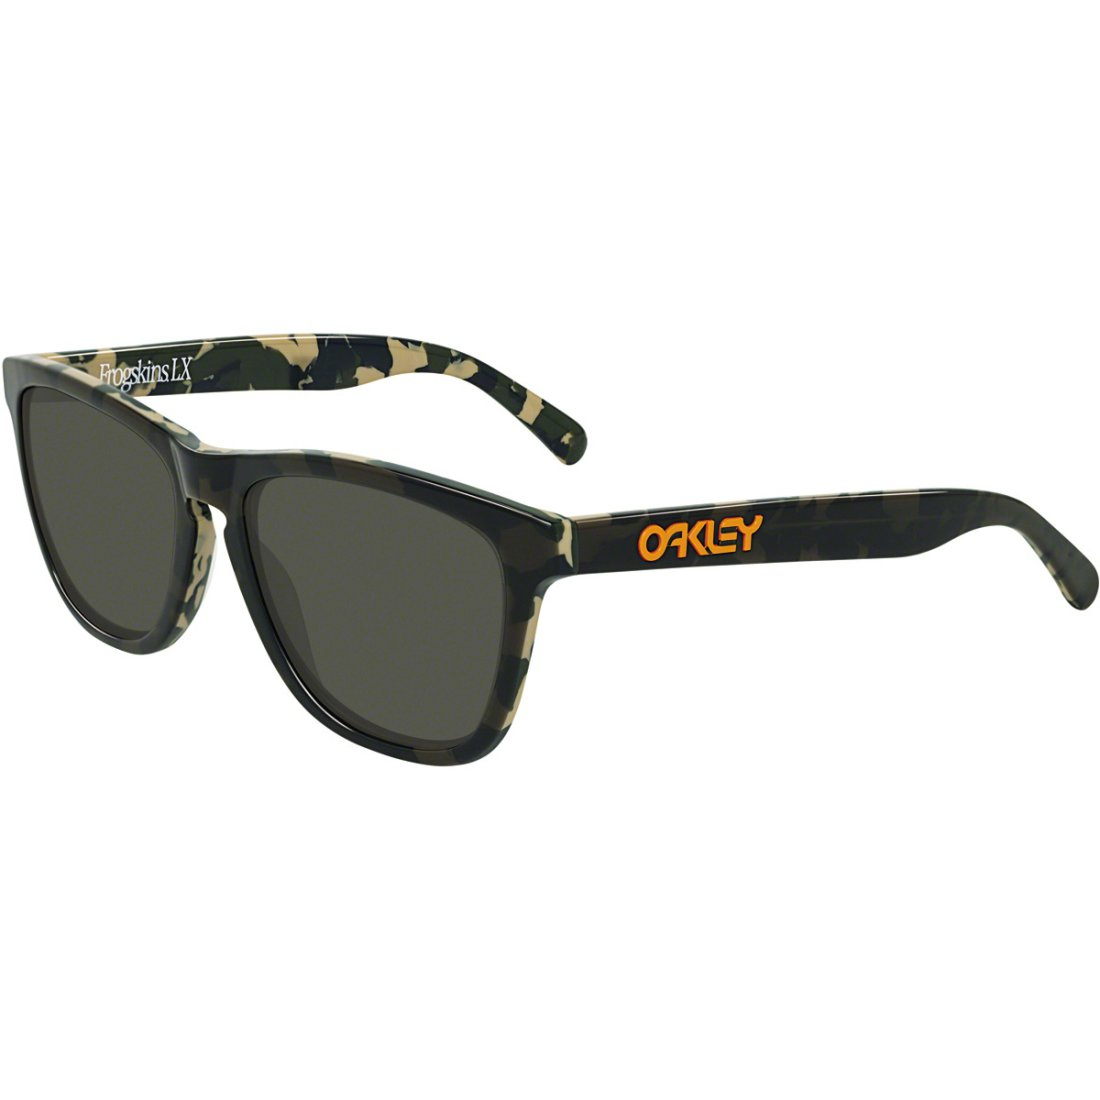 Grey Lunettes Camo Lx Signature Dark Oakley Series Eric Frogskins Night Masque Koston pqMSzGUV